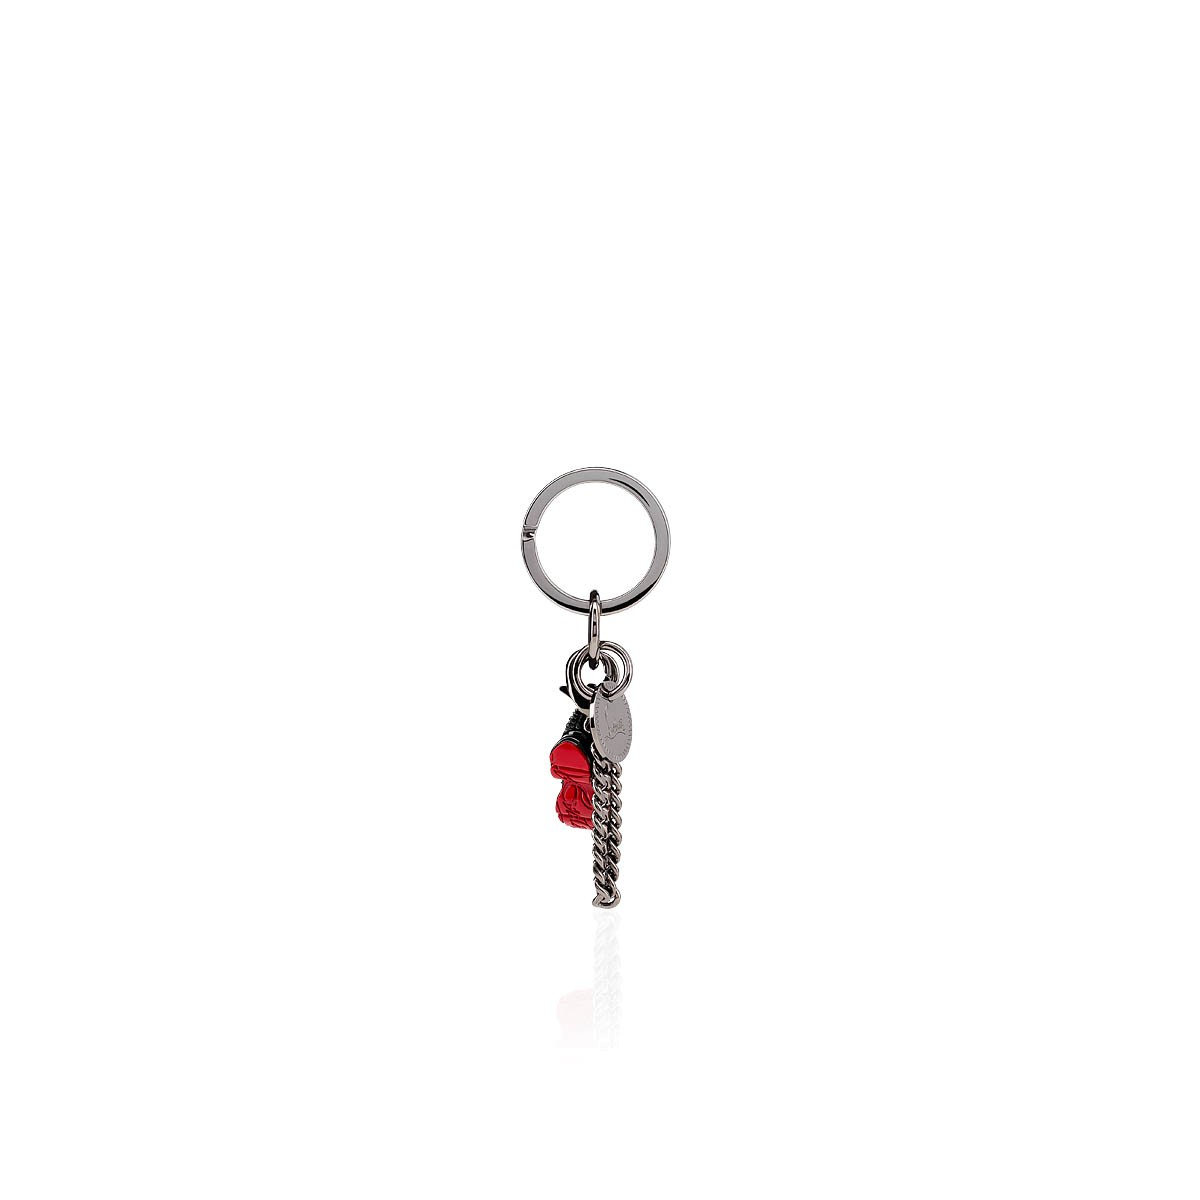 Small Leather Goods - M Running Keyring - Christian Louboutin